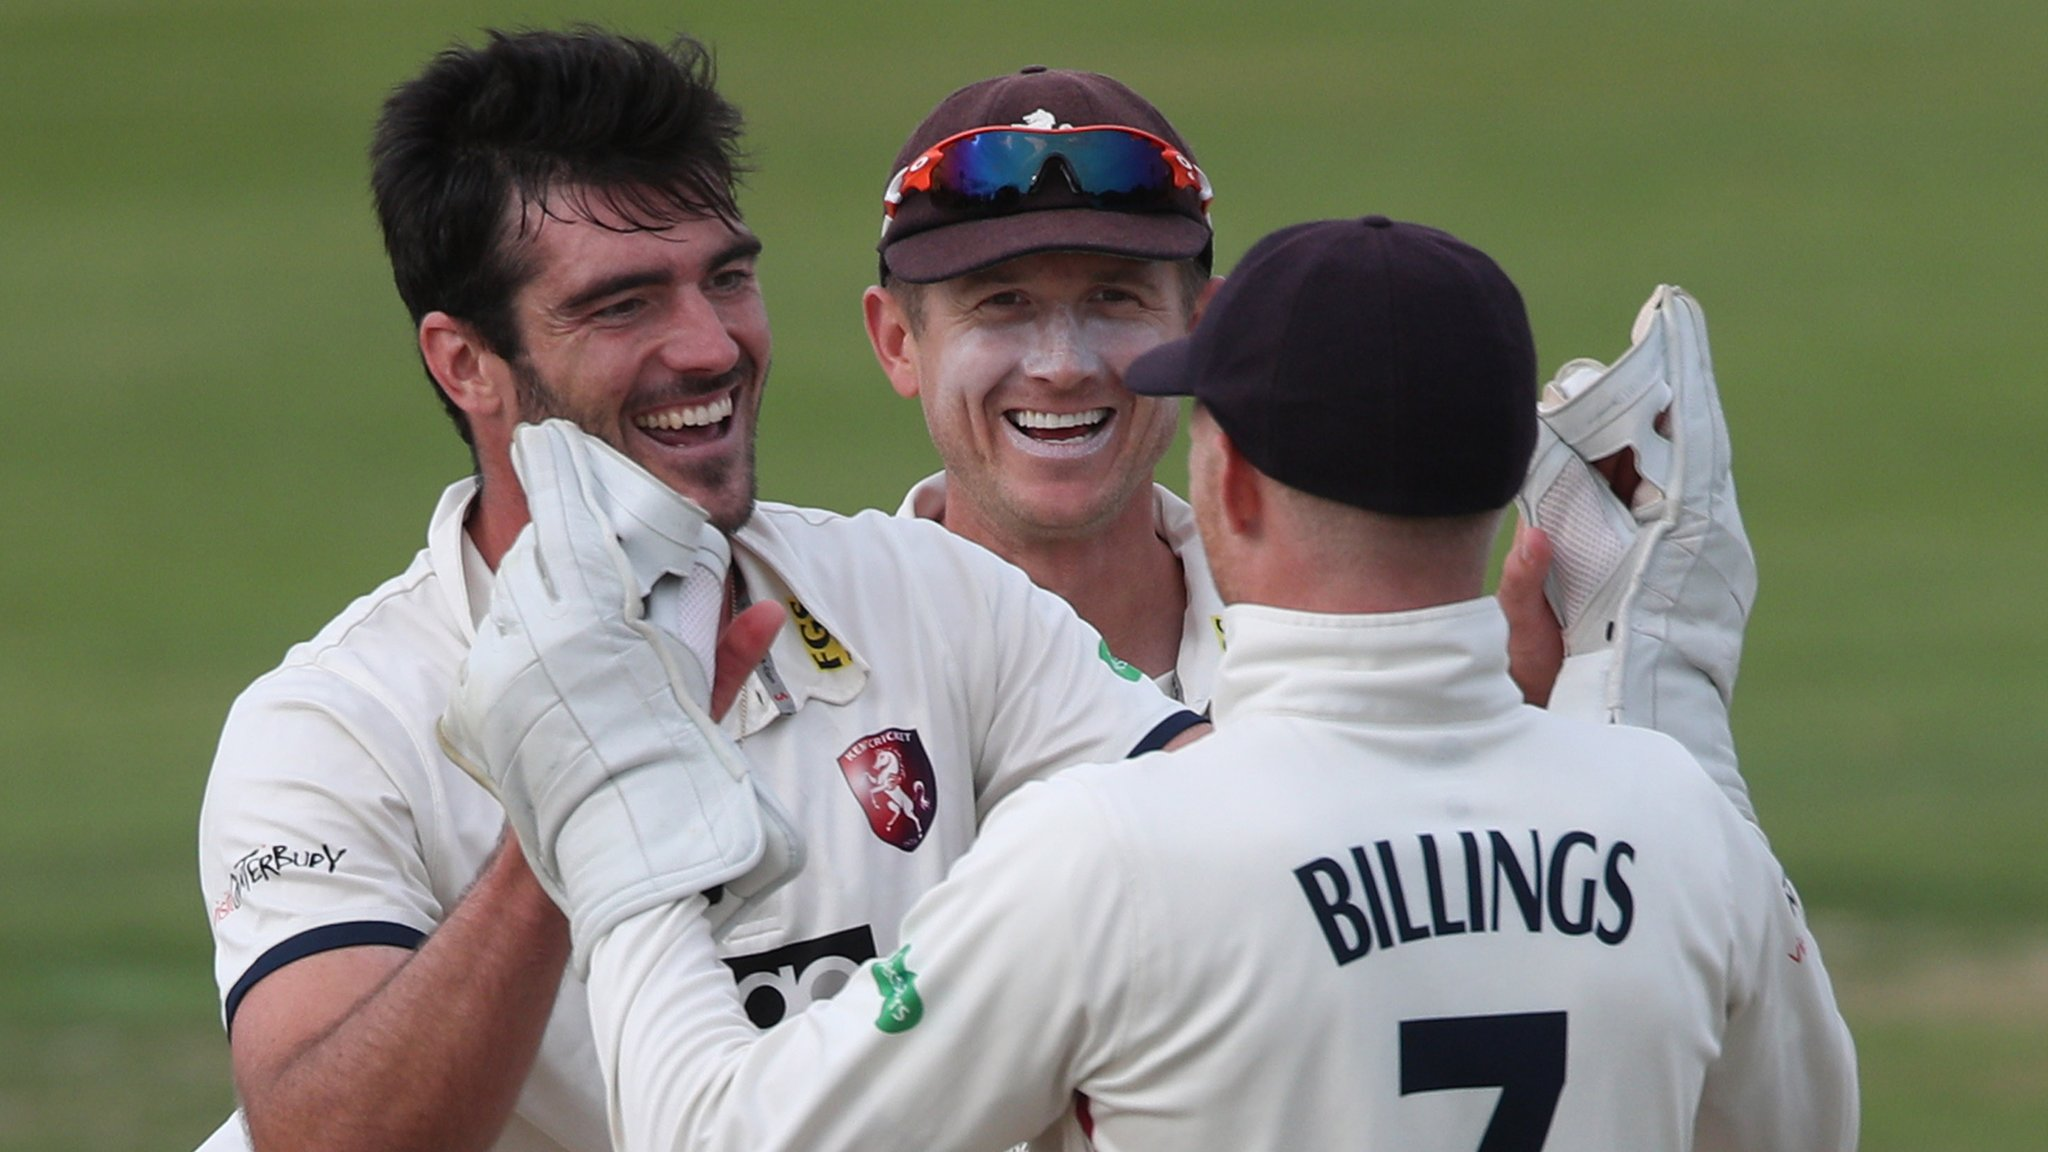 County Championship: Kent promoted to Division One after beating Glamorgan